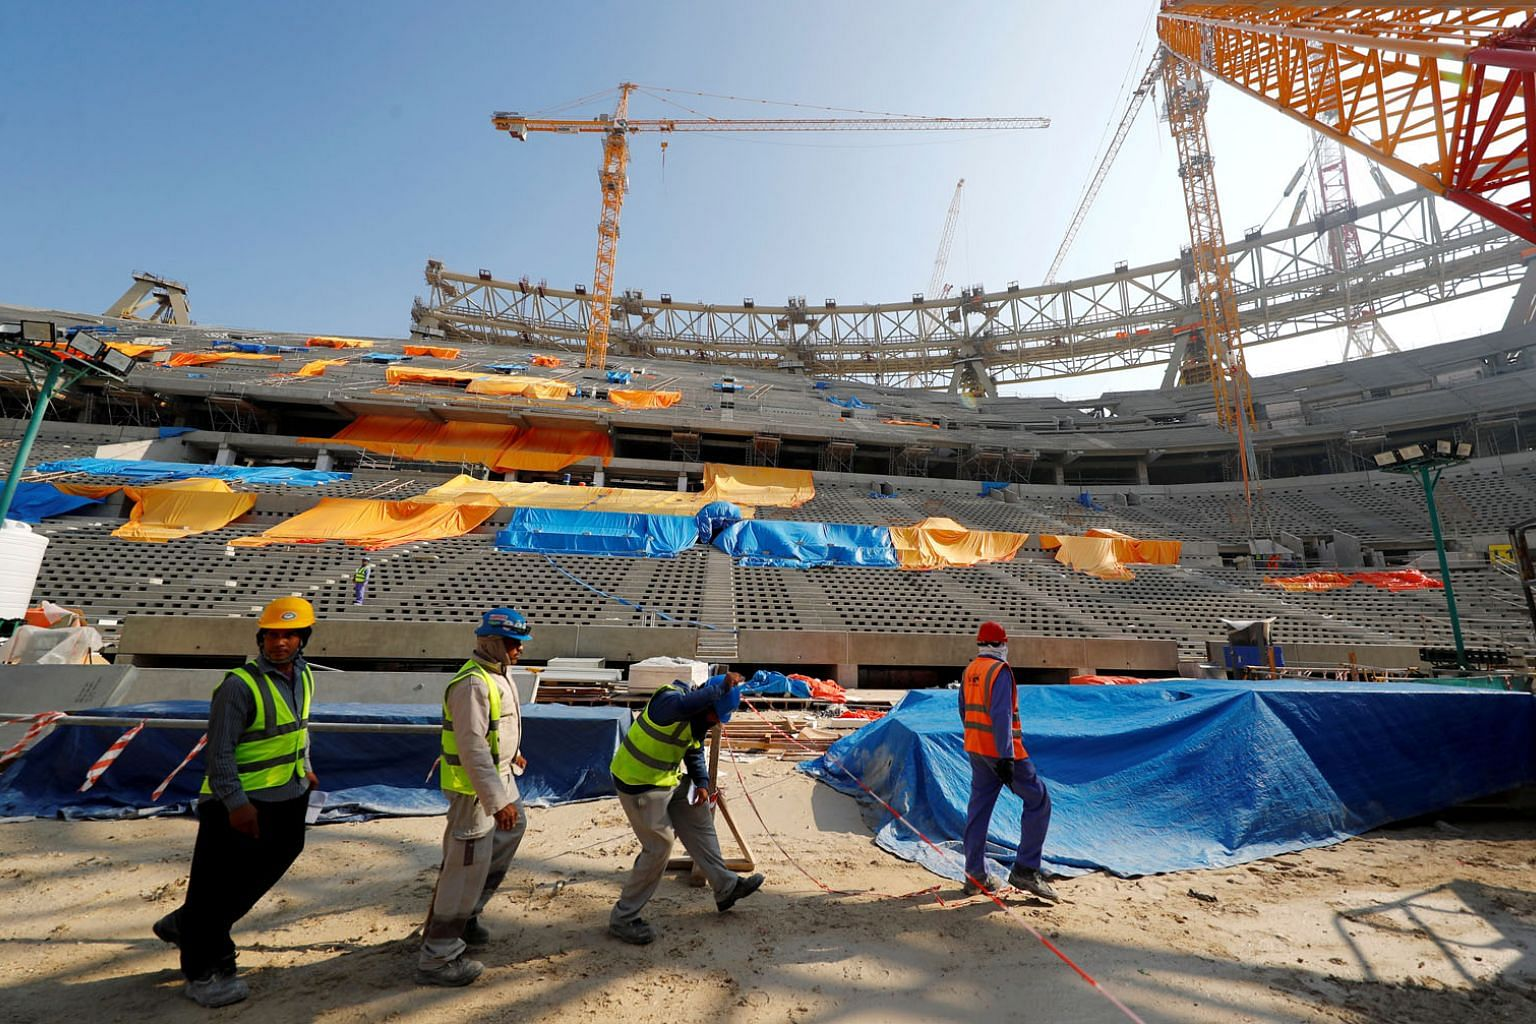 Qatar has spent huge amounts of money on the construction of facilities like this stadium in Lusail for the 2022 World Cup. PHOTO: REUTERS